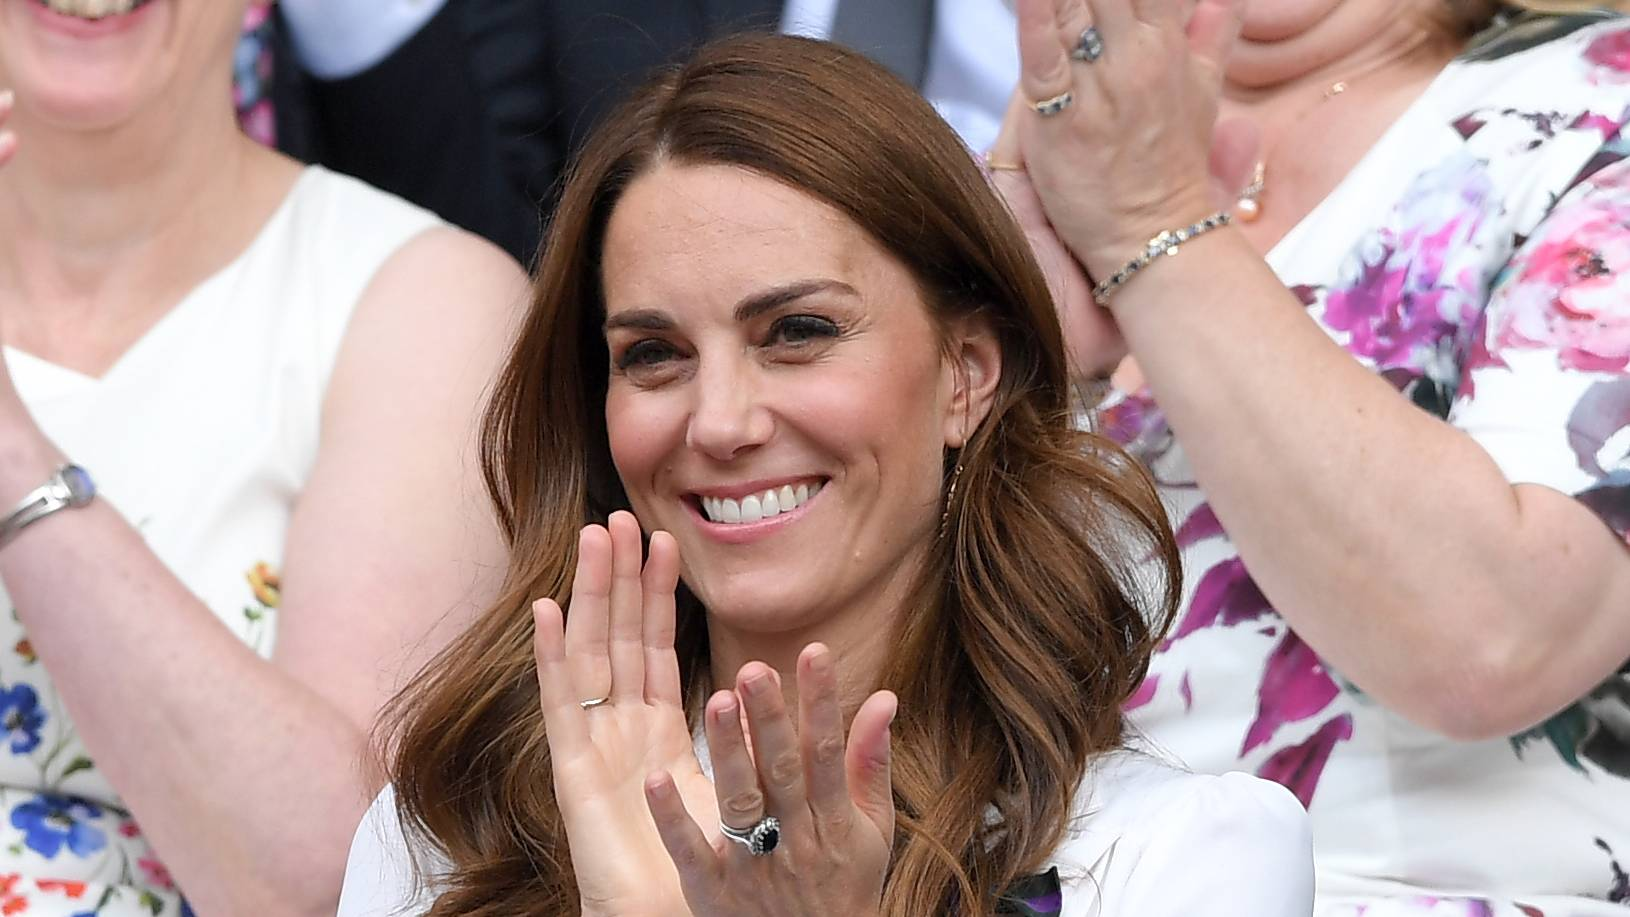 Duchess Kate stuns in white frock as she breaks tradition at Wimbledon